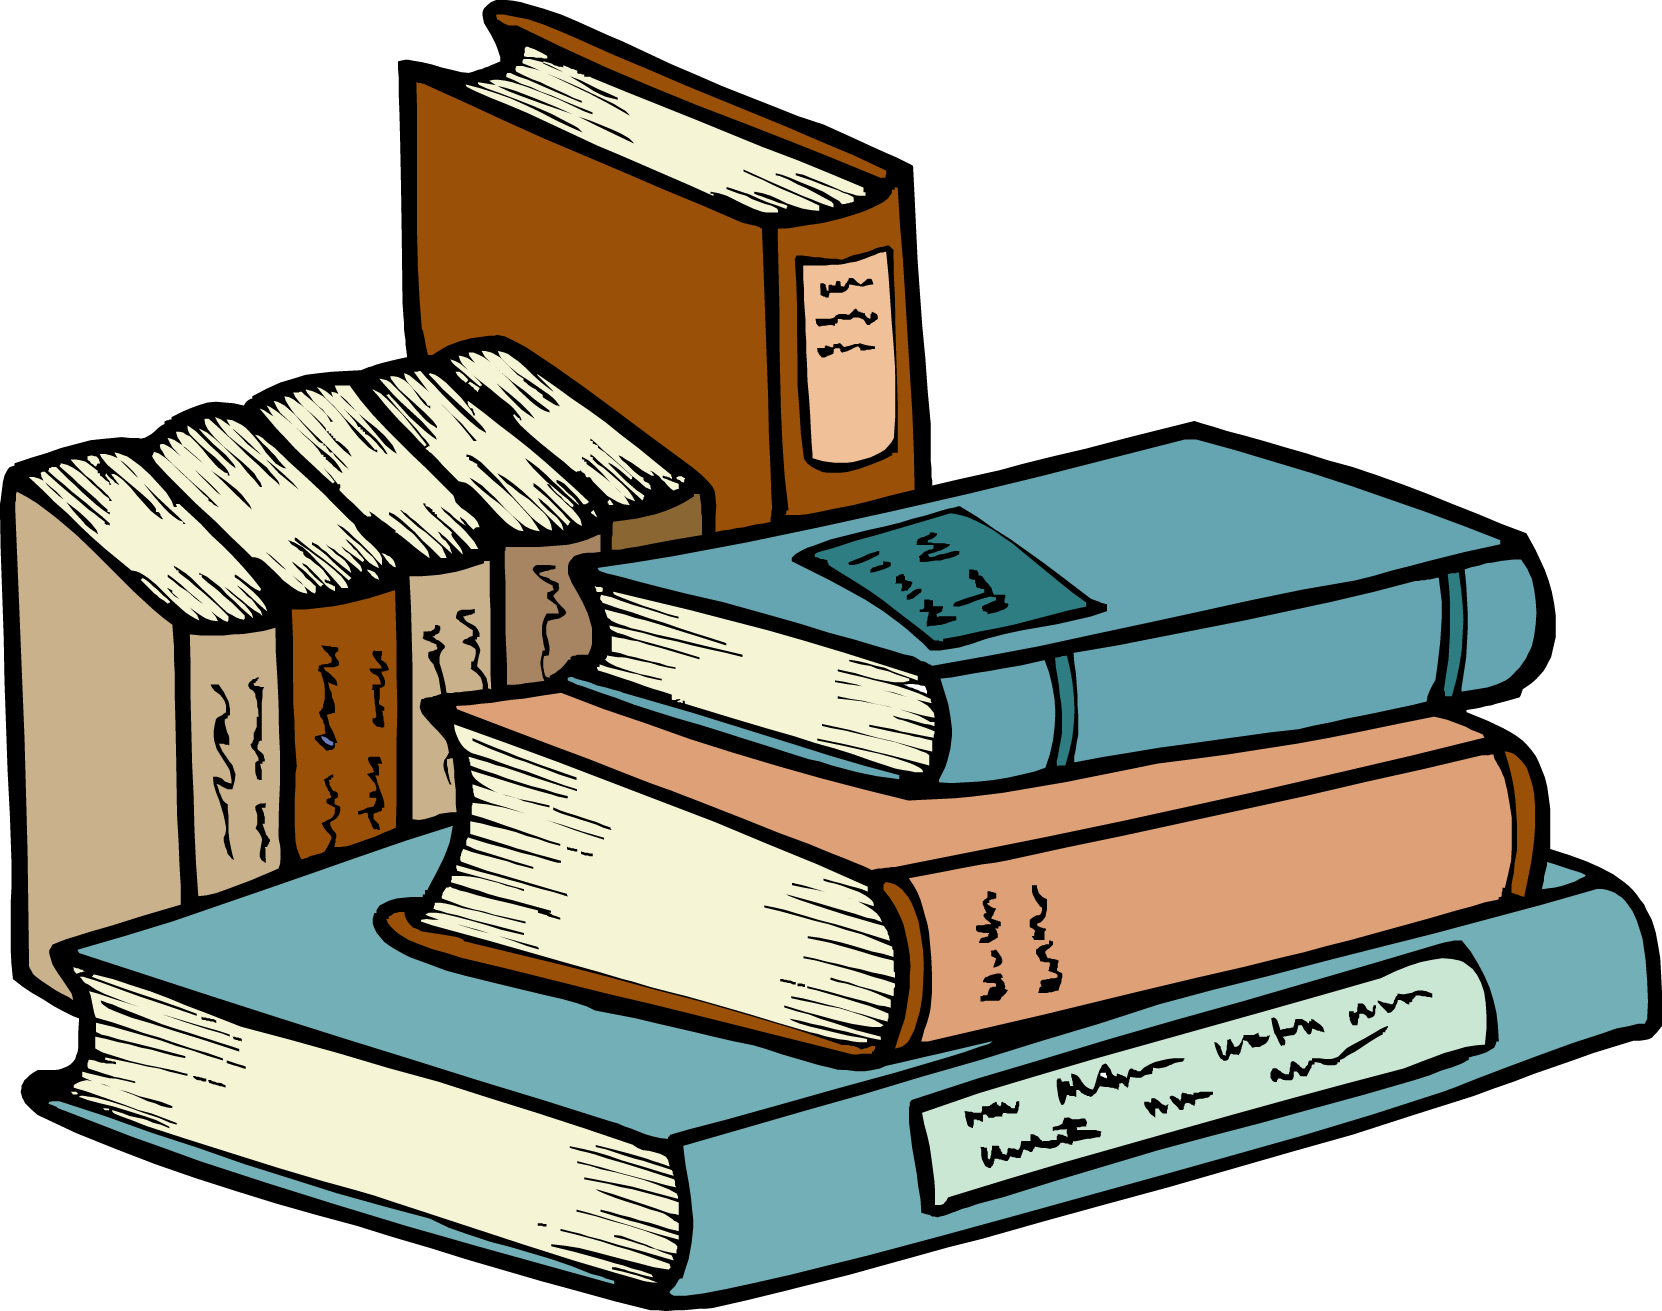 Book Stack Clip Art. stack clipart-Book Stack Clip Art. stack clipart-15